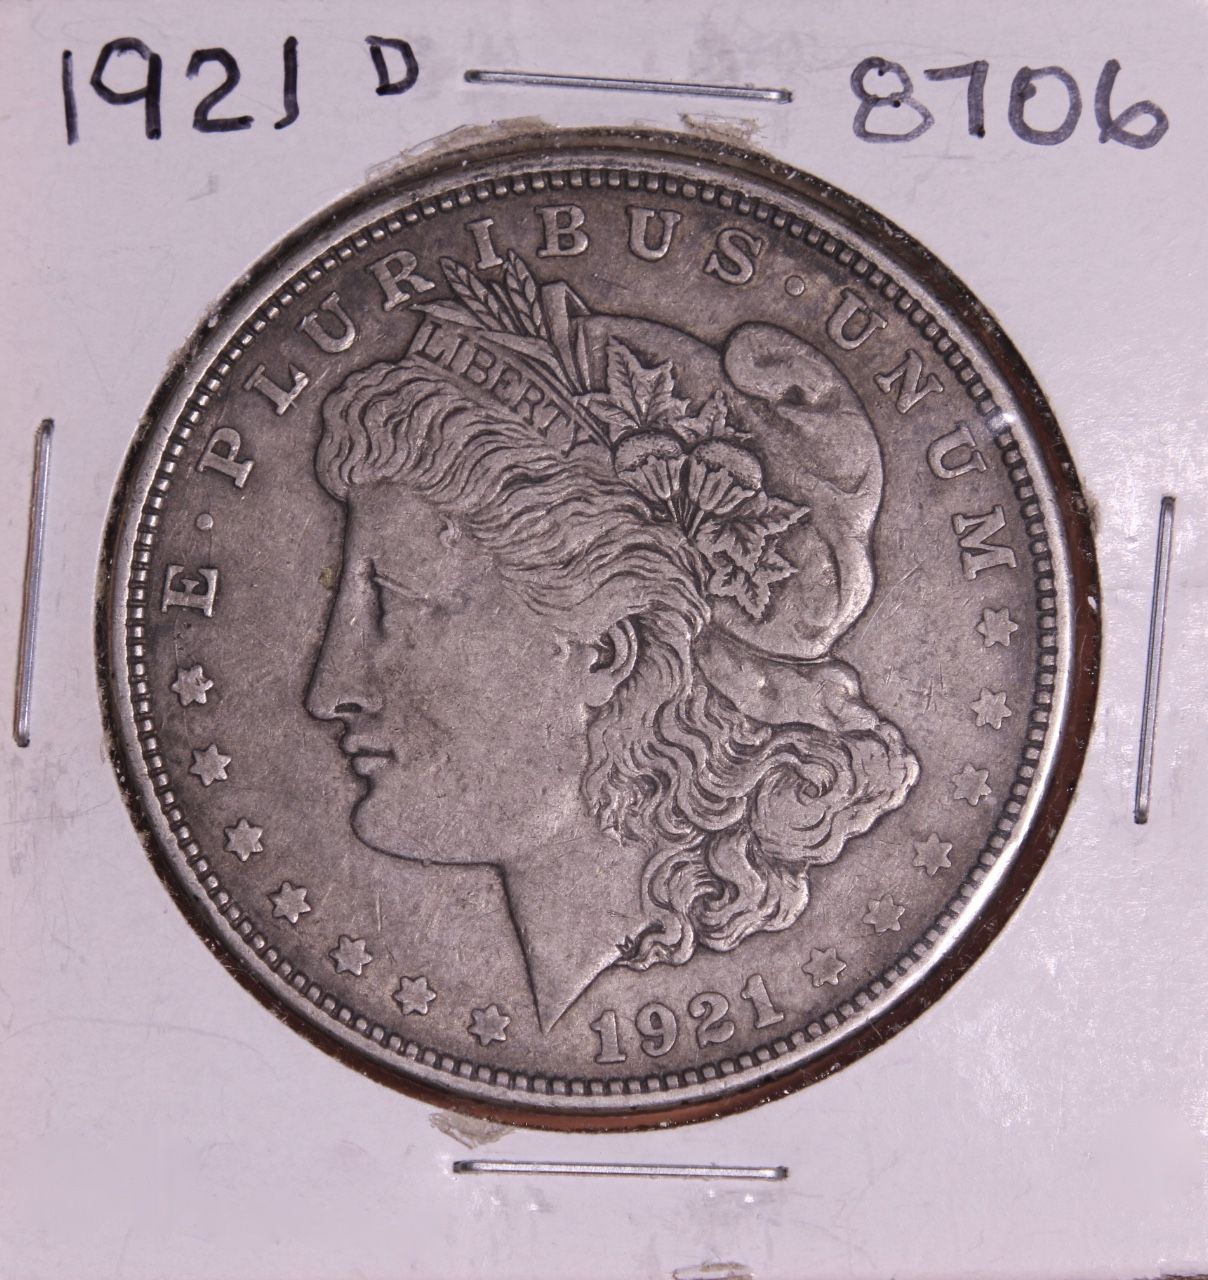 1921 D Morgan Silver Dollar 8706 F15 For Sale Buy Now